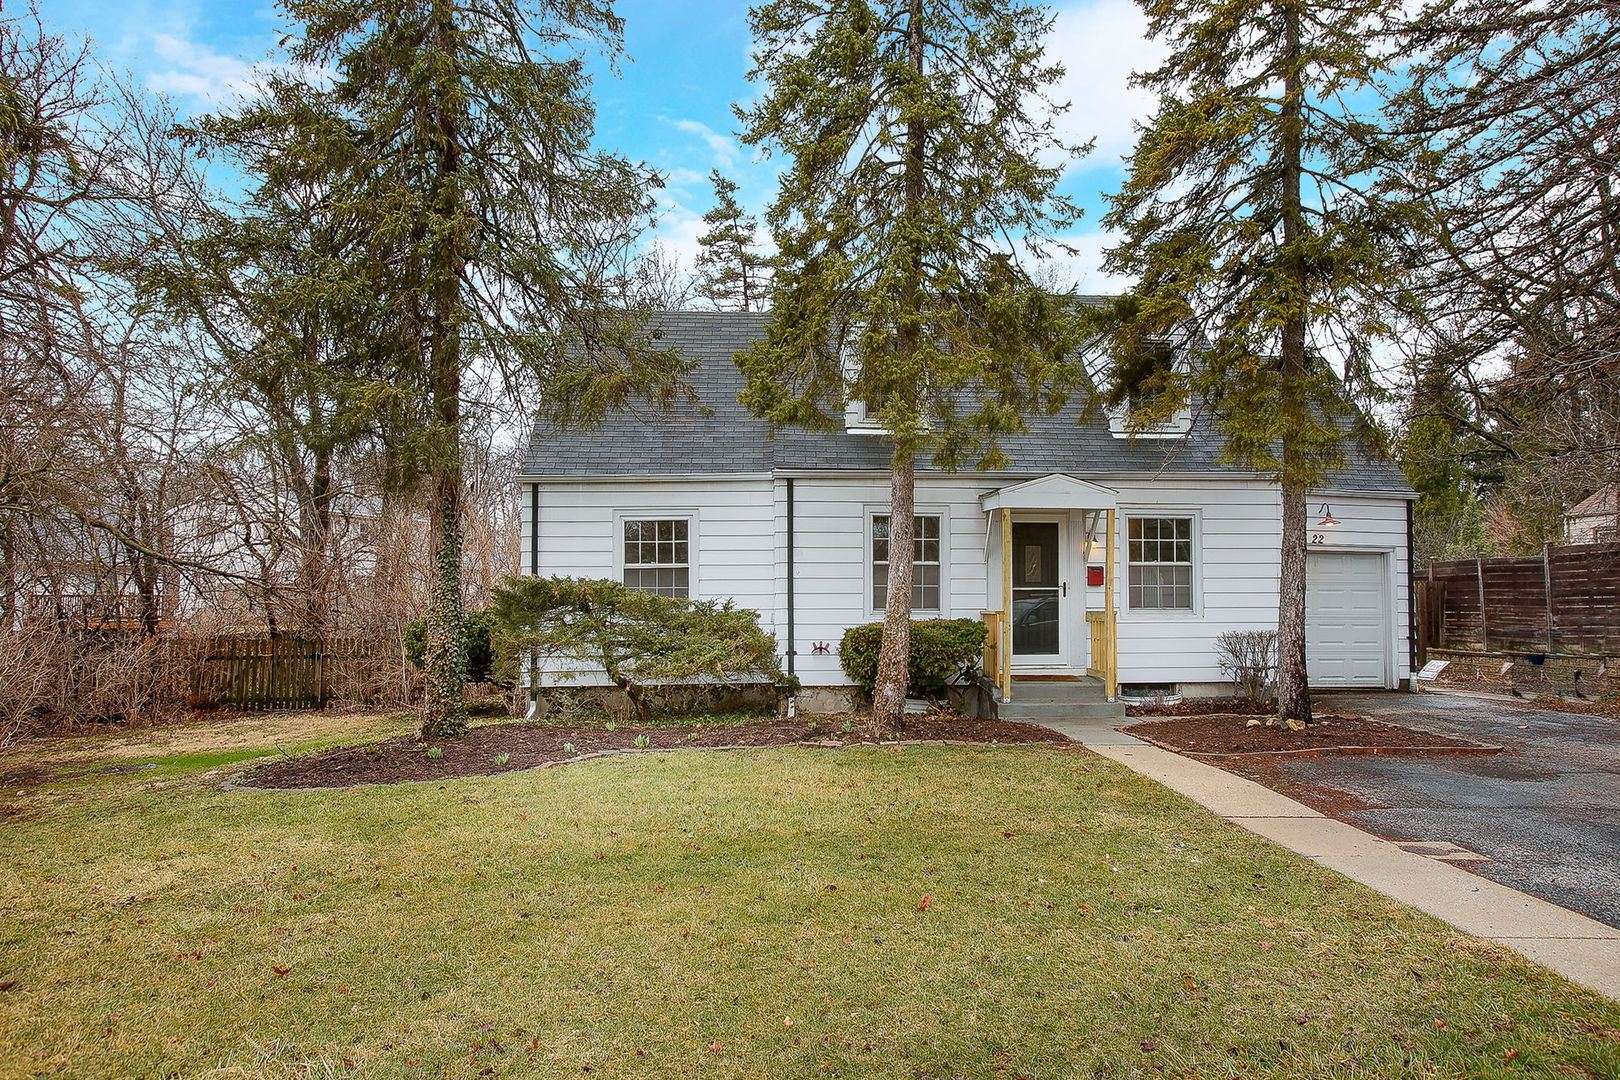 22 N West Road, Lombard, IL 60148 - #: 11027808